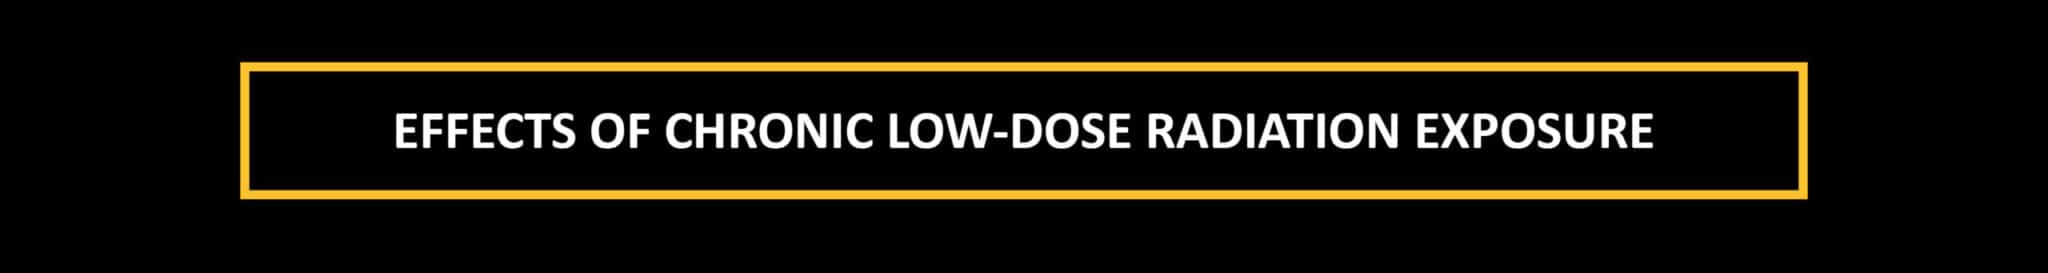 Effects of low dose radiation exposure